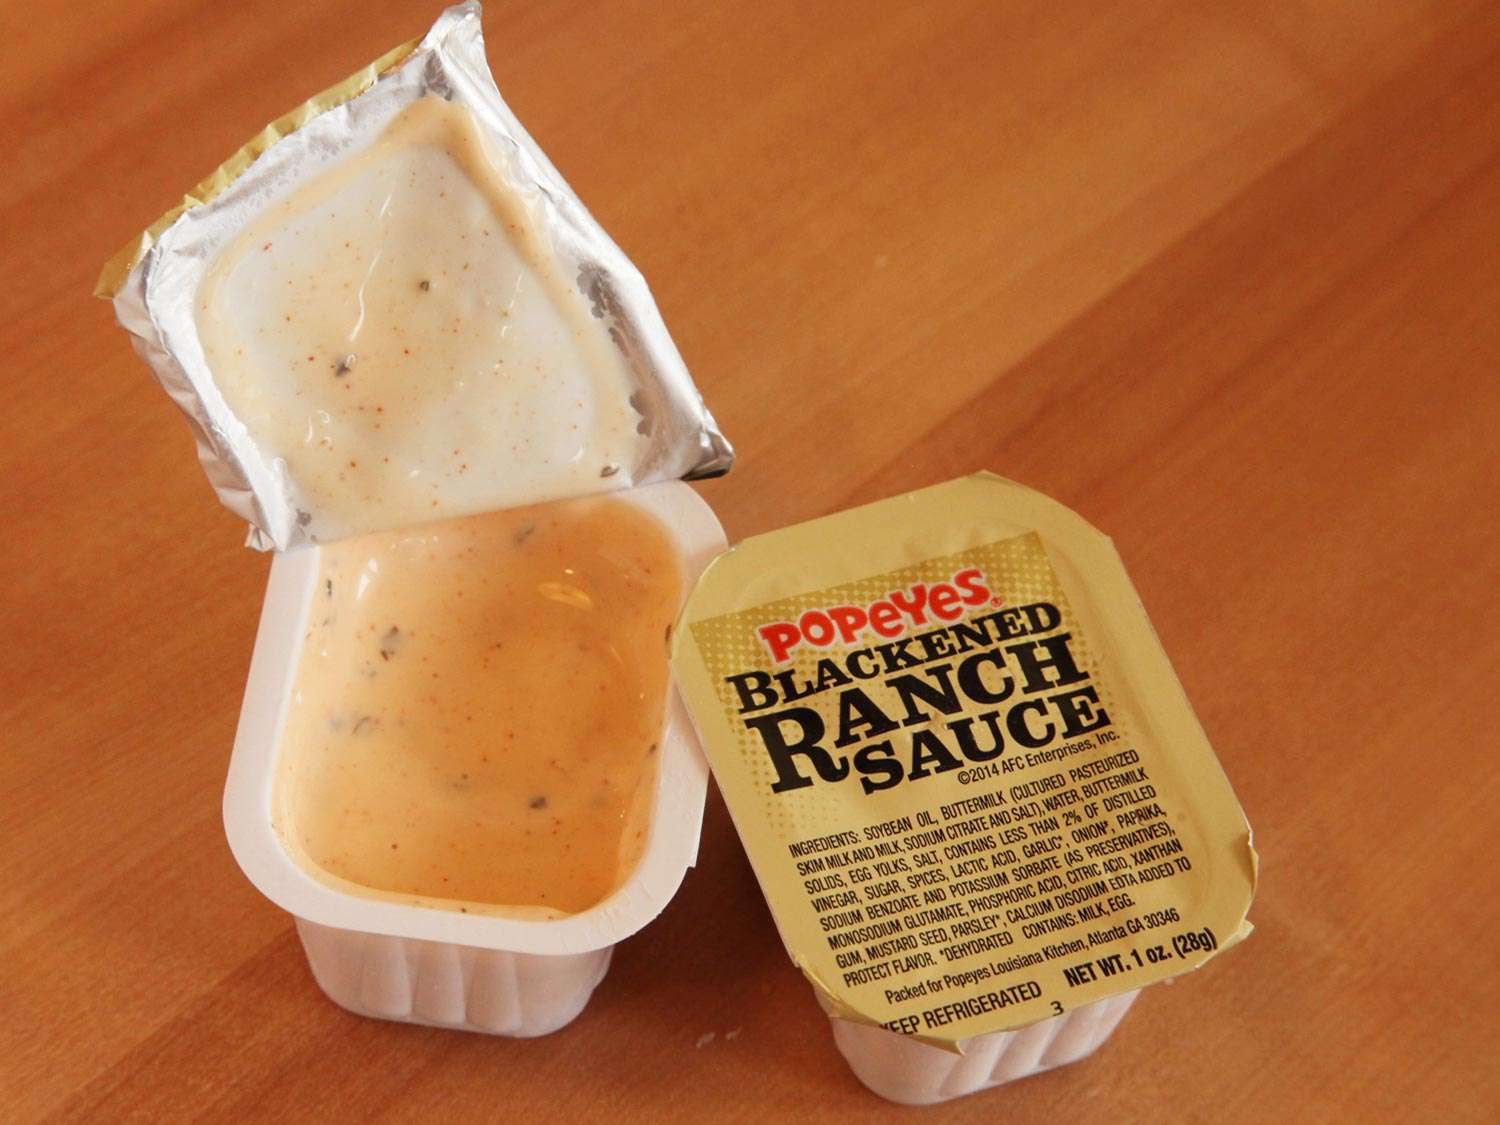 Two containers of blackened Ranch sauce from Popeye's